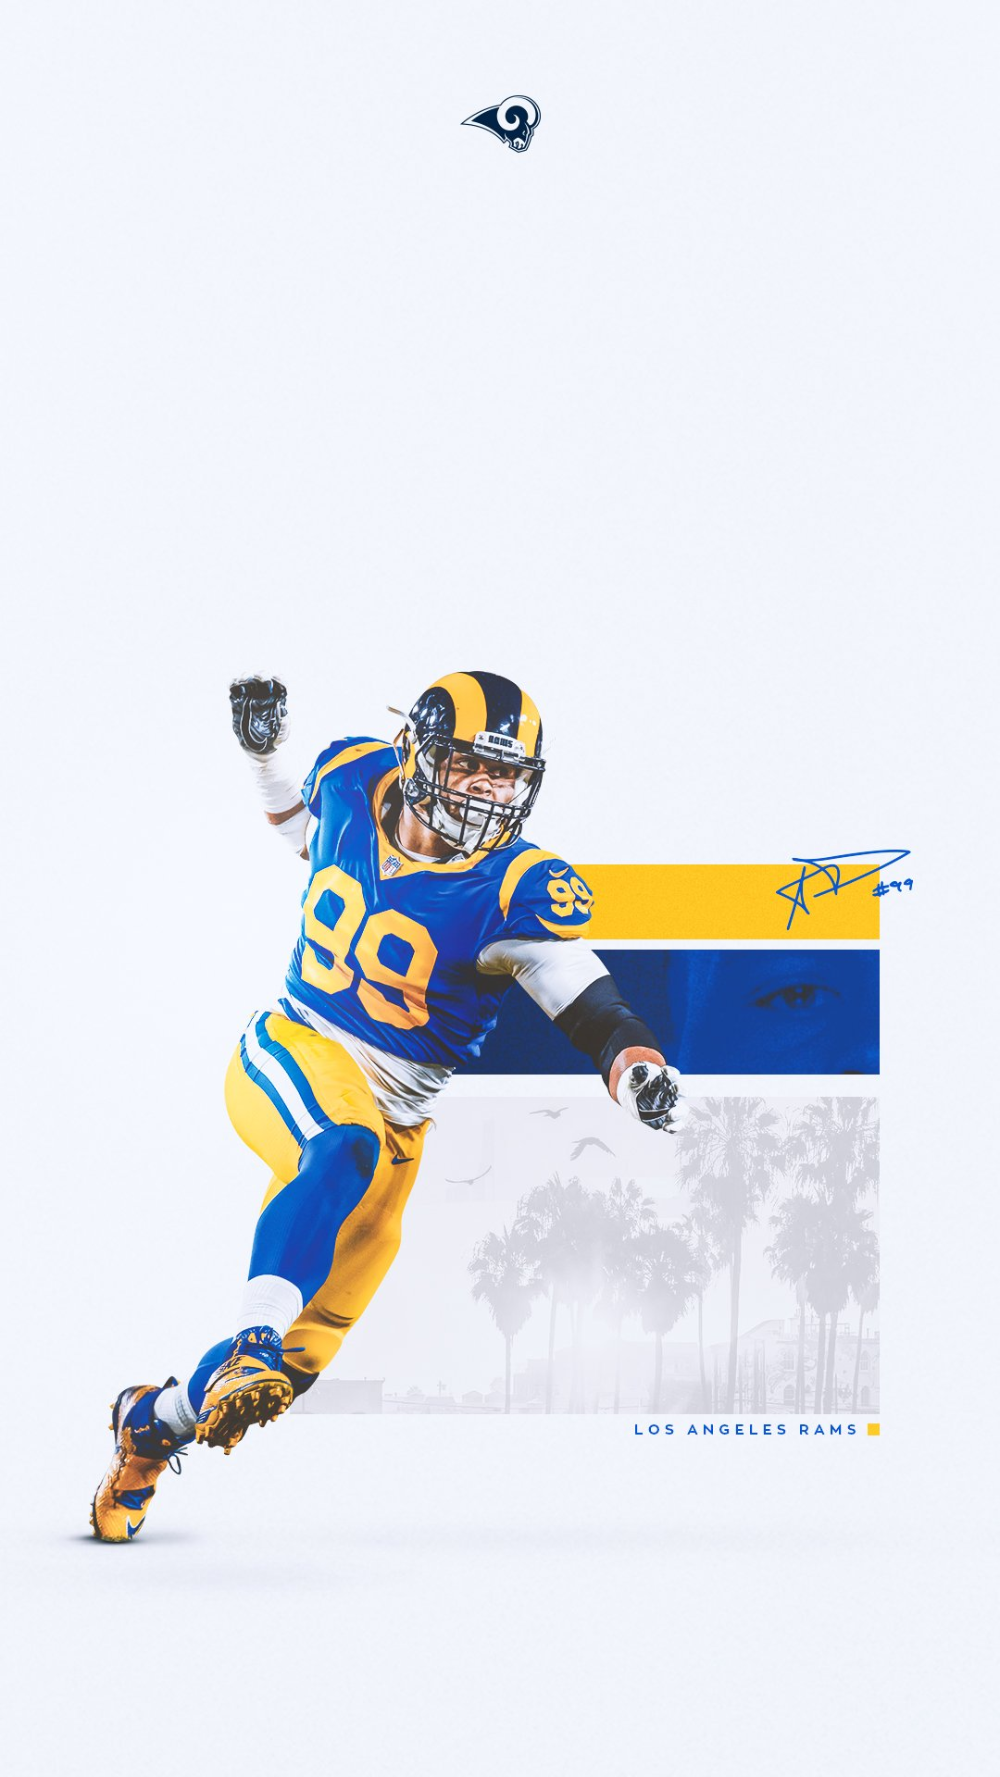 Los Angeles Rams On Twitter Sports Graphic Design Sports Design Inspiration Sport Poster Design